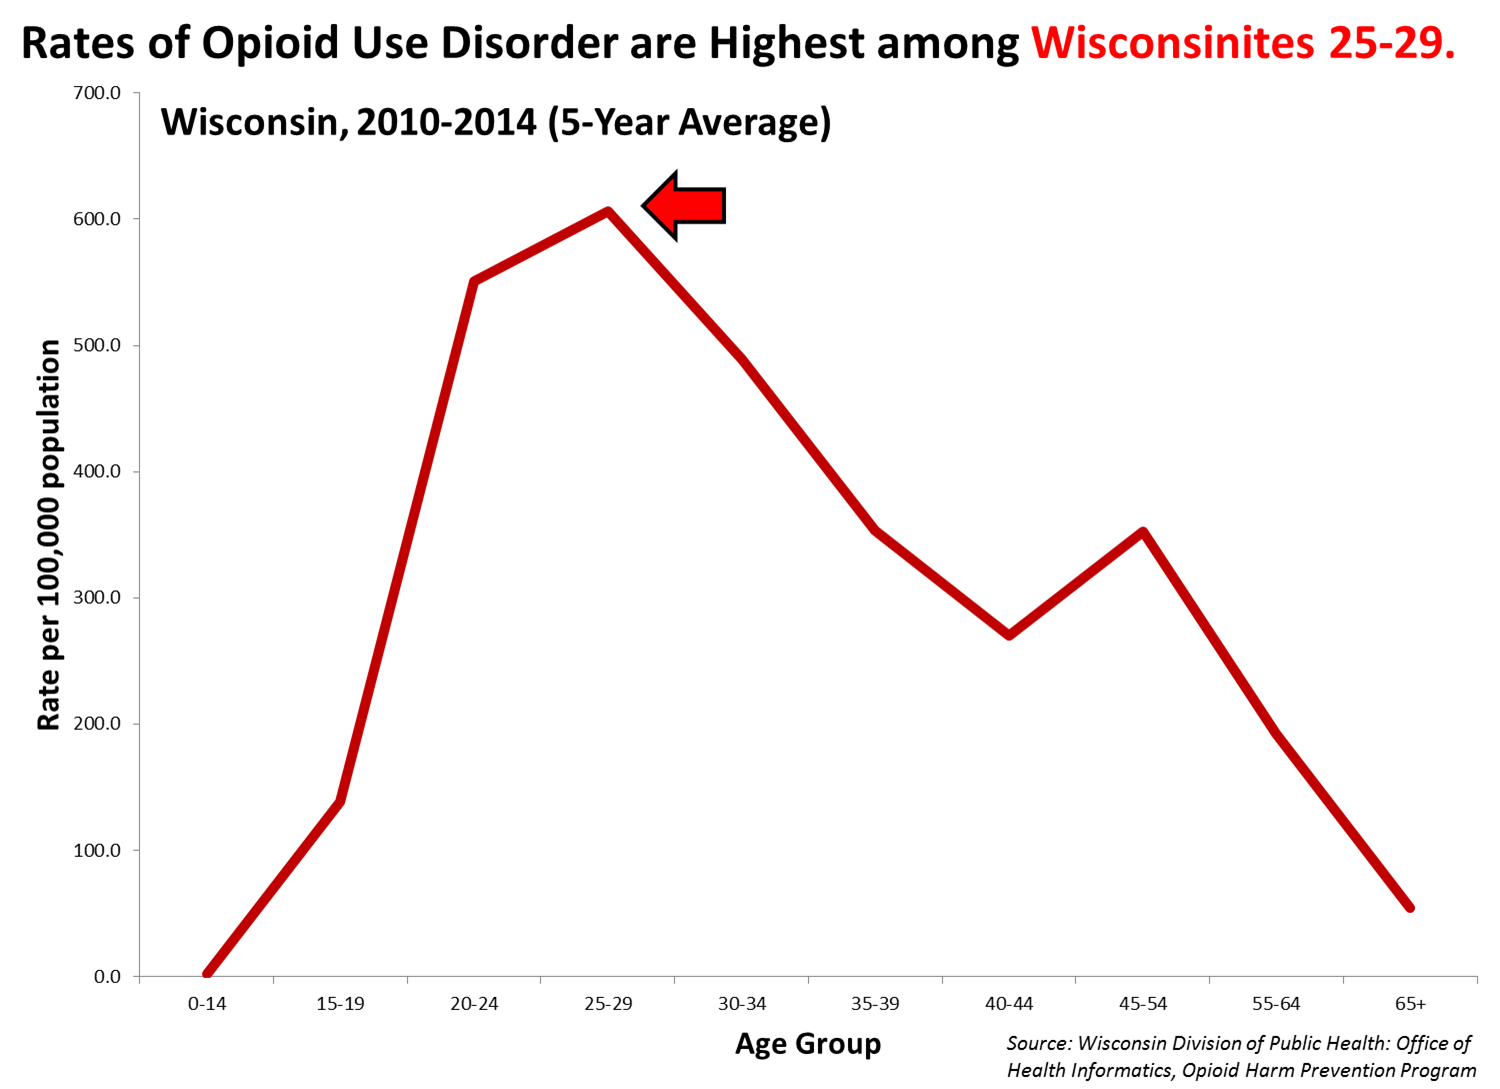 Rates of opioid use disorder are highest among Wisconsinites 25-29 years old